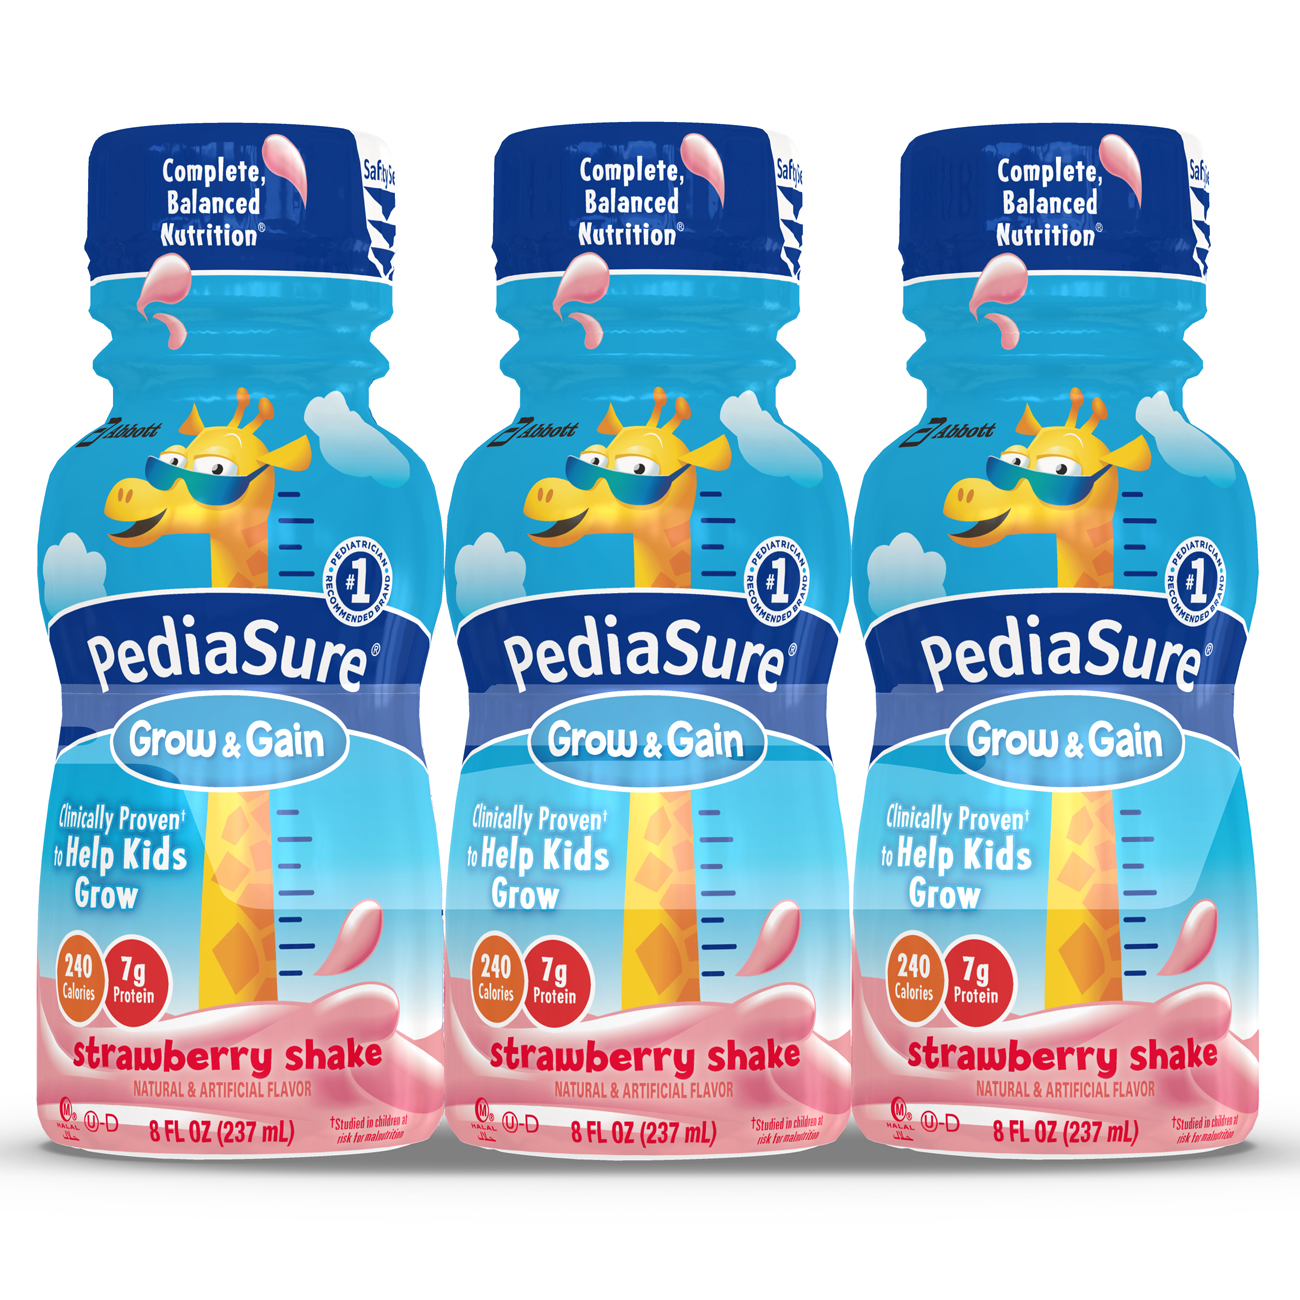 PediaSure Grow & Gain Nutrition Shake For Kids, Strawberry, 8 fl oz (Pack of 6)